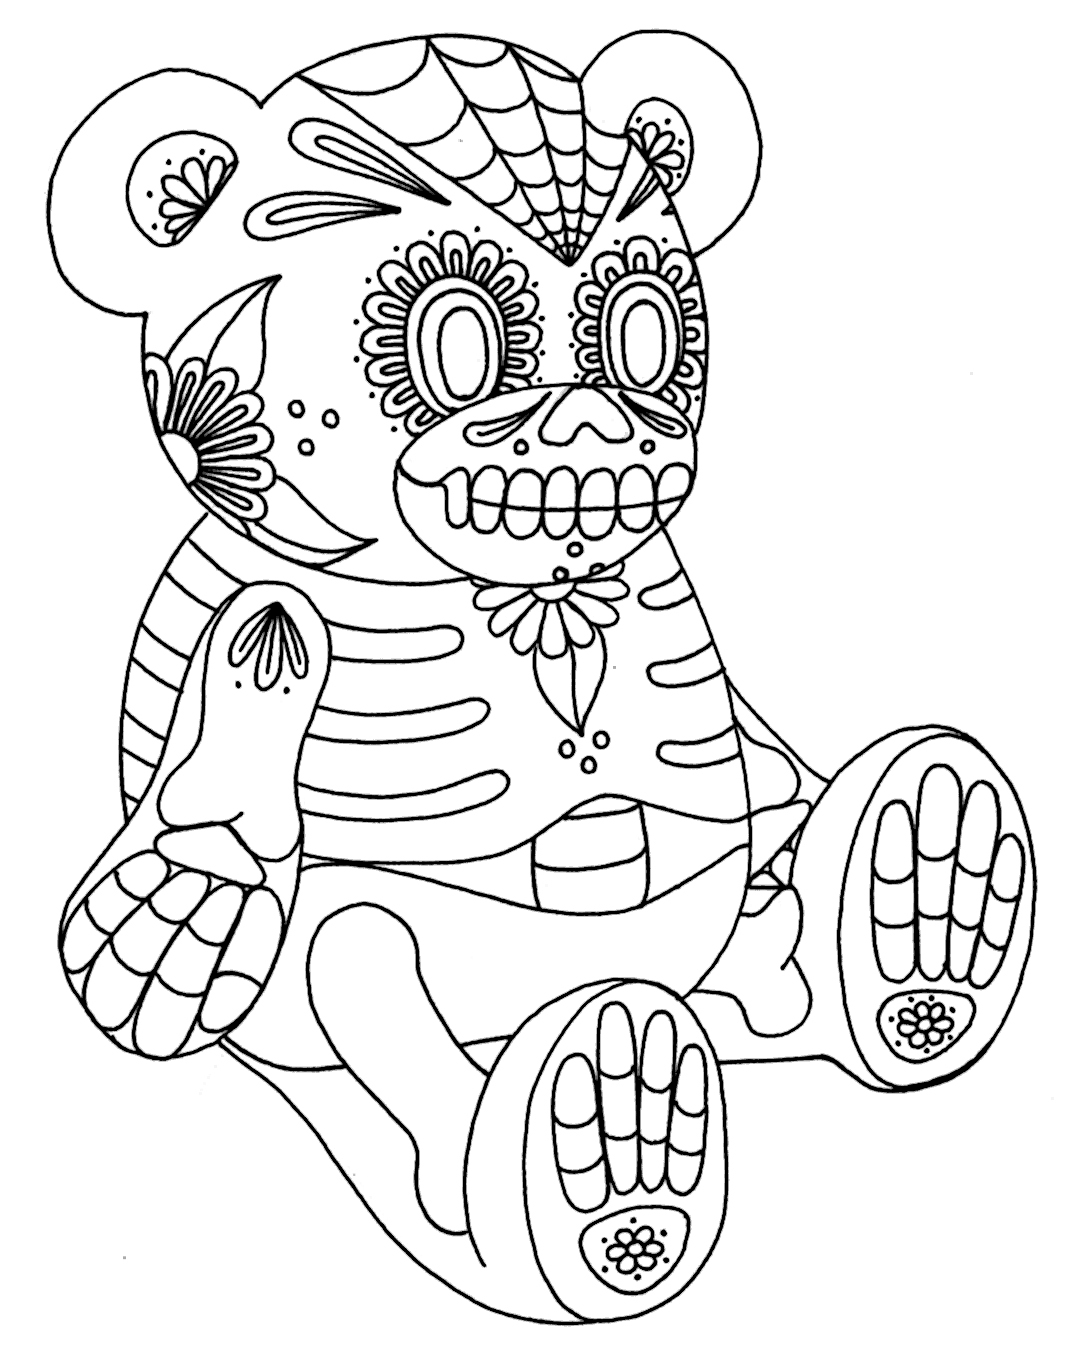 colored sugar skulls sugar skull coloring pages best coloring pages for kids skulls colored sugar